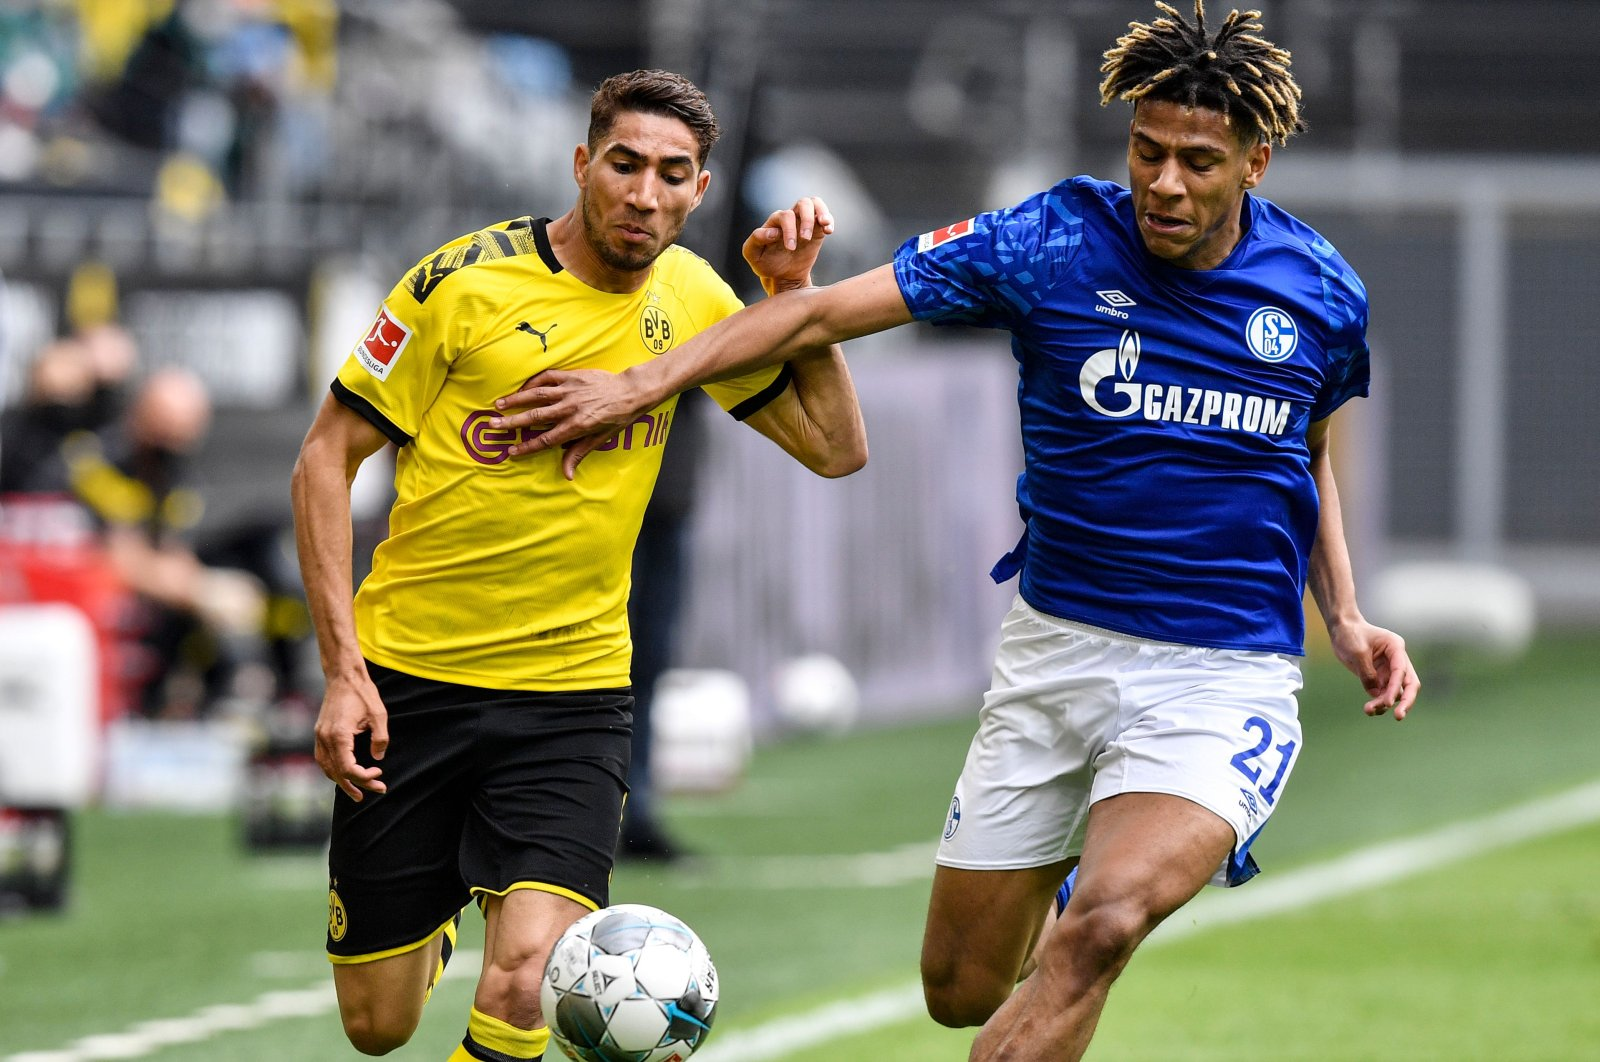 Dortmund's Achraf Hakimi vies for the ball with Schalke's Jean-Clair Todibo during a Bundesliga match in Dortmund, Germany, May 16, 2020. (AFP Photo)